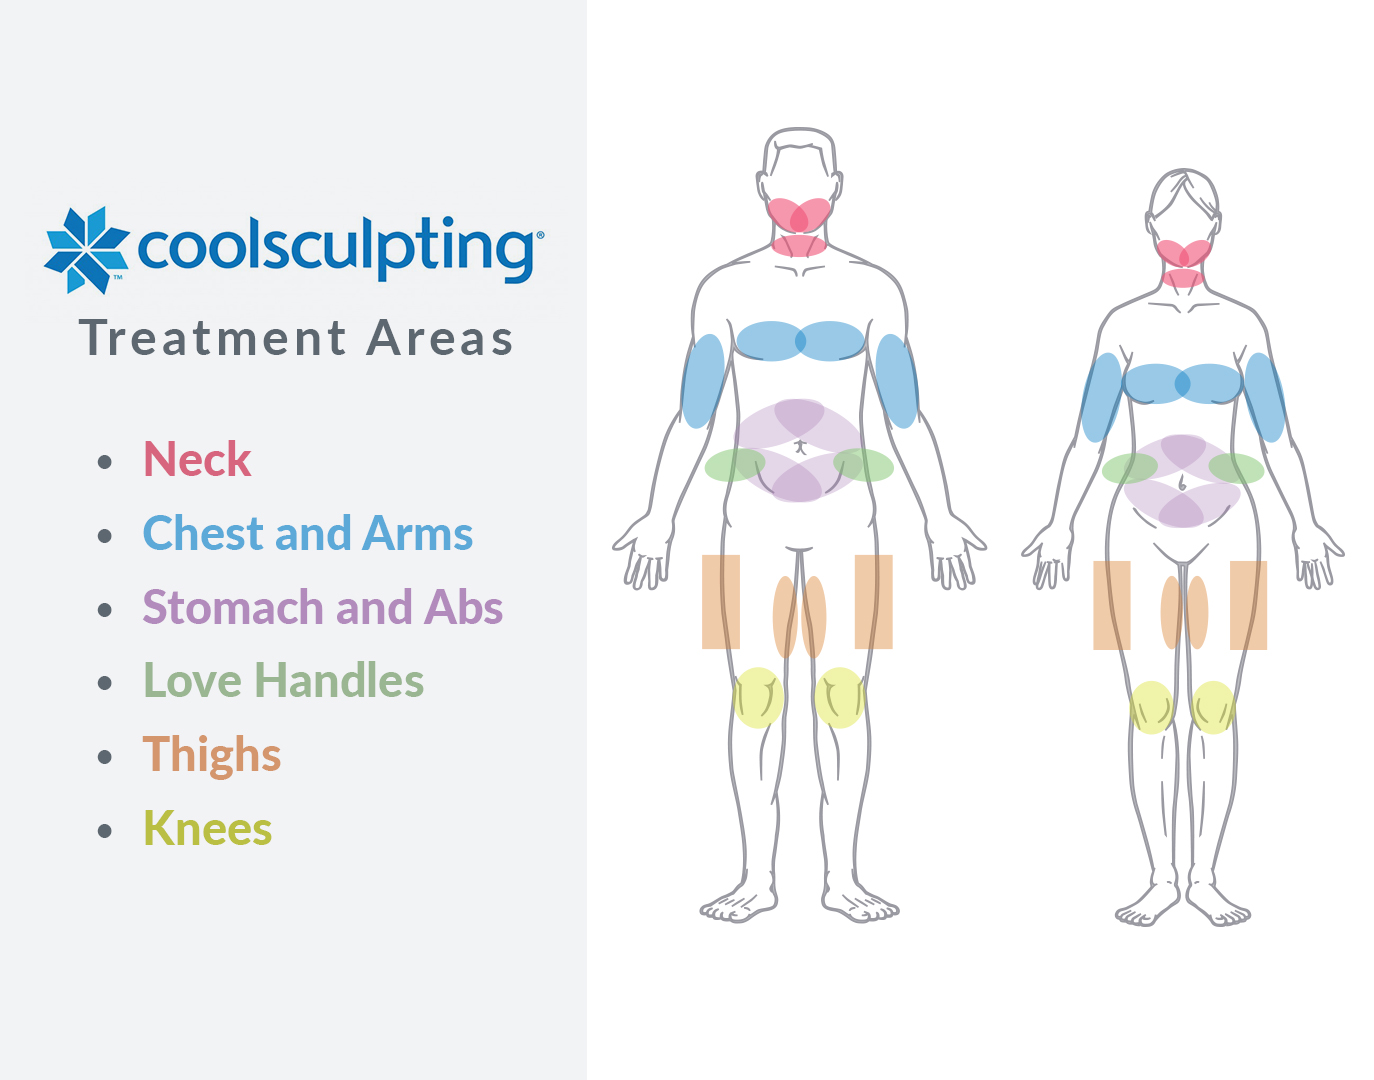 san diego dermatologists coolsculpting - HD 1374×1080